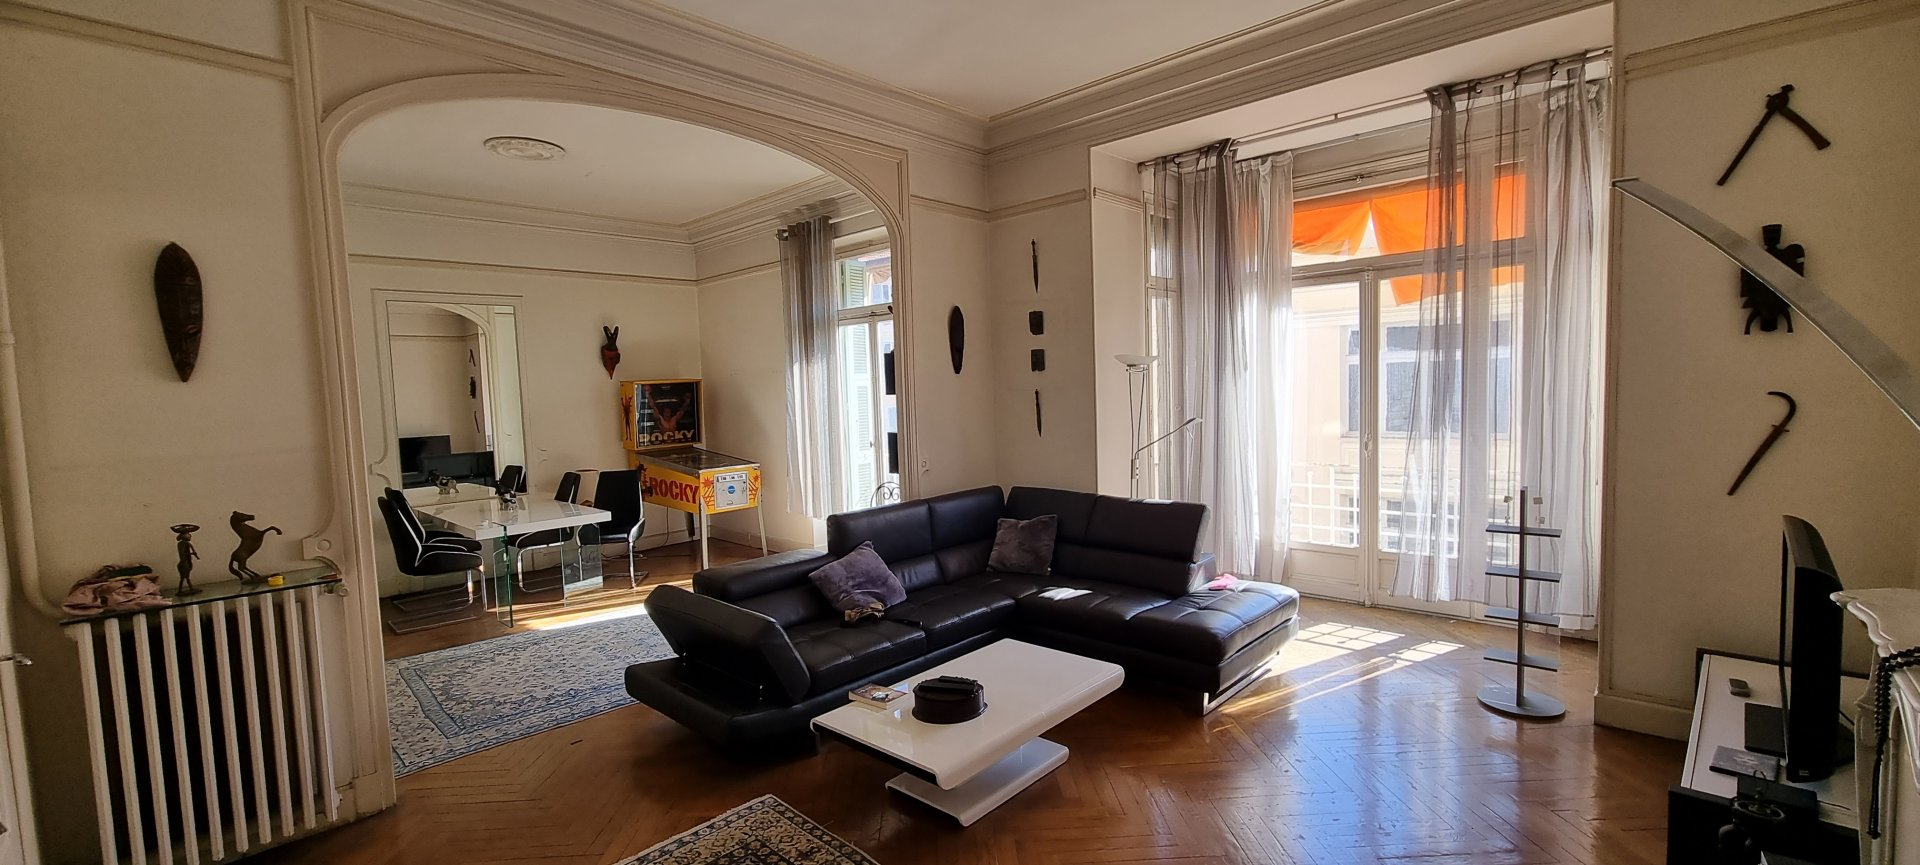 spacieux appartement bourgeois